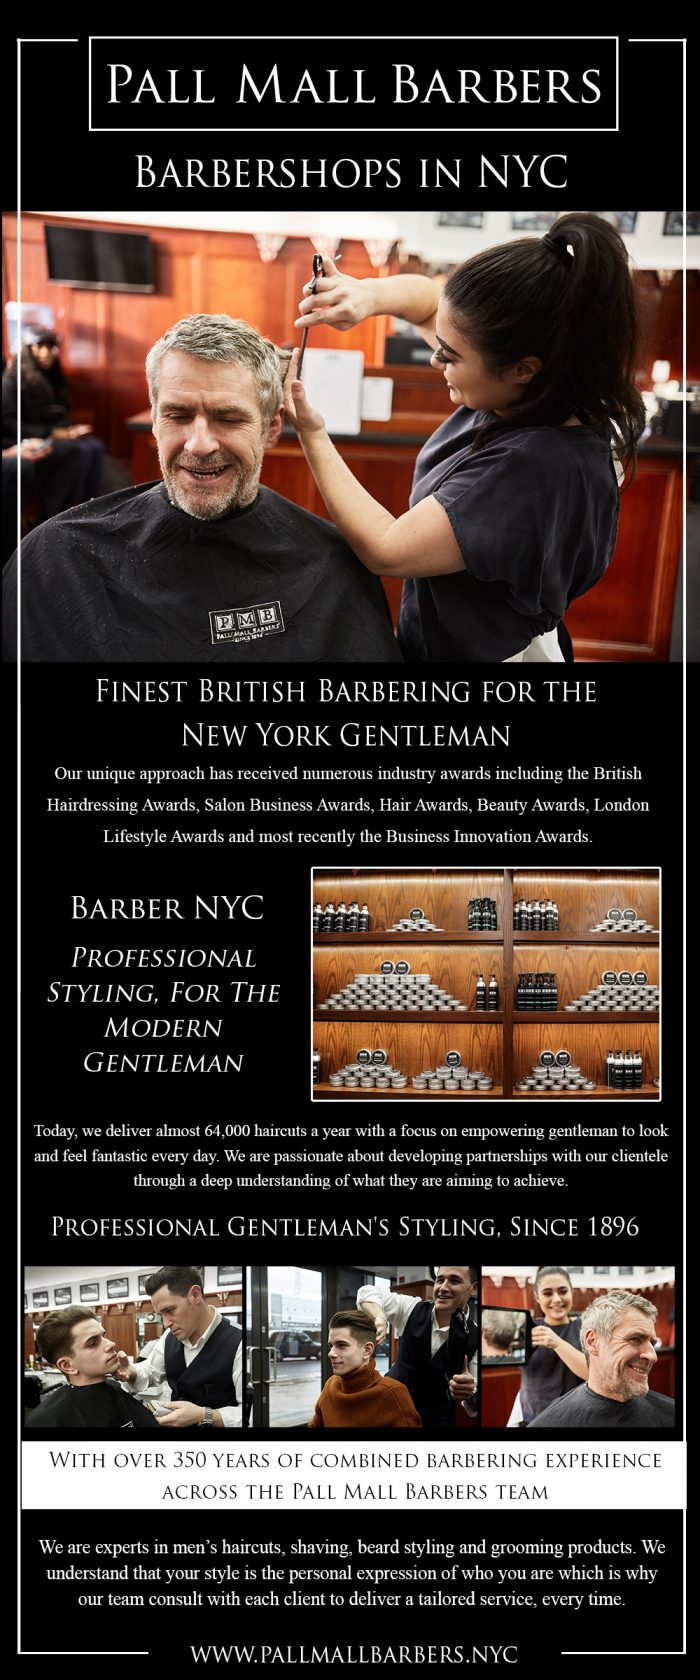 Barbershops in NYC